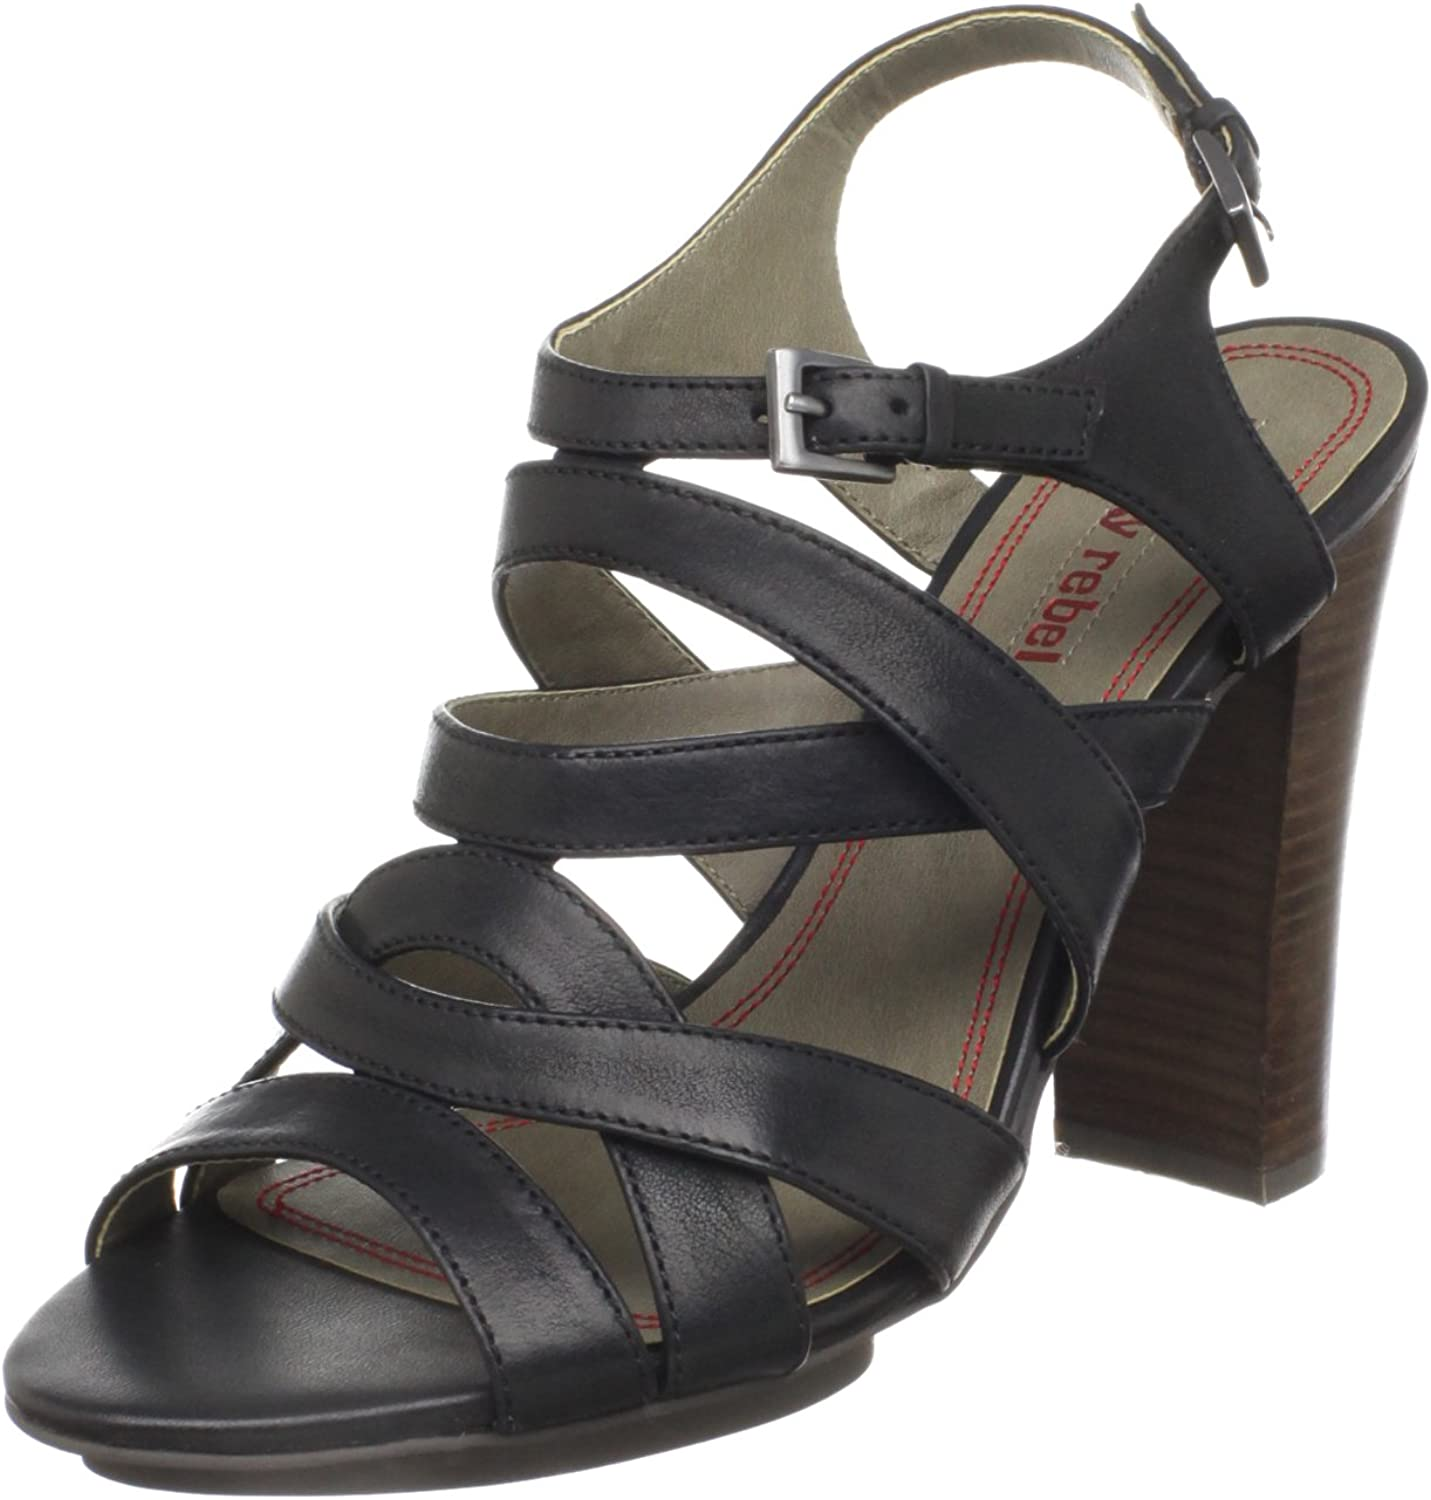 Luxury Rebel Women's Galaxy Ankle-Strap Sandal